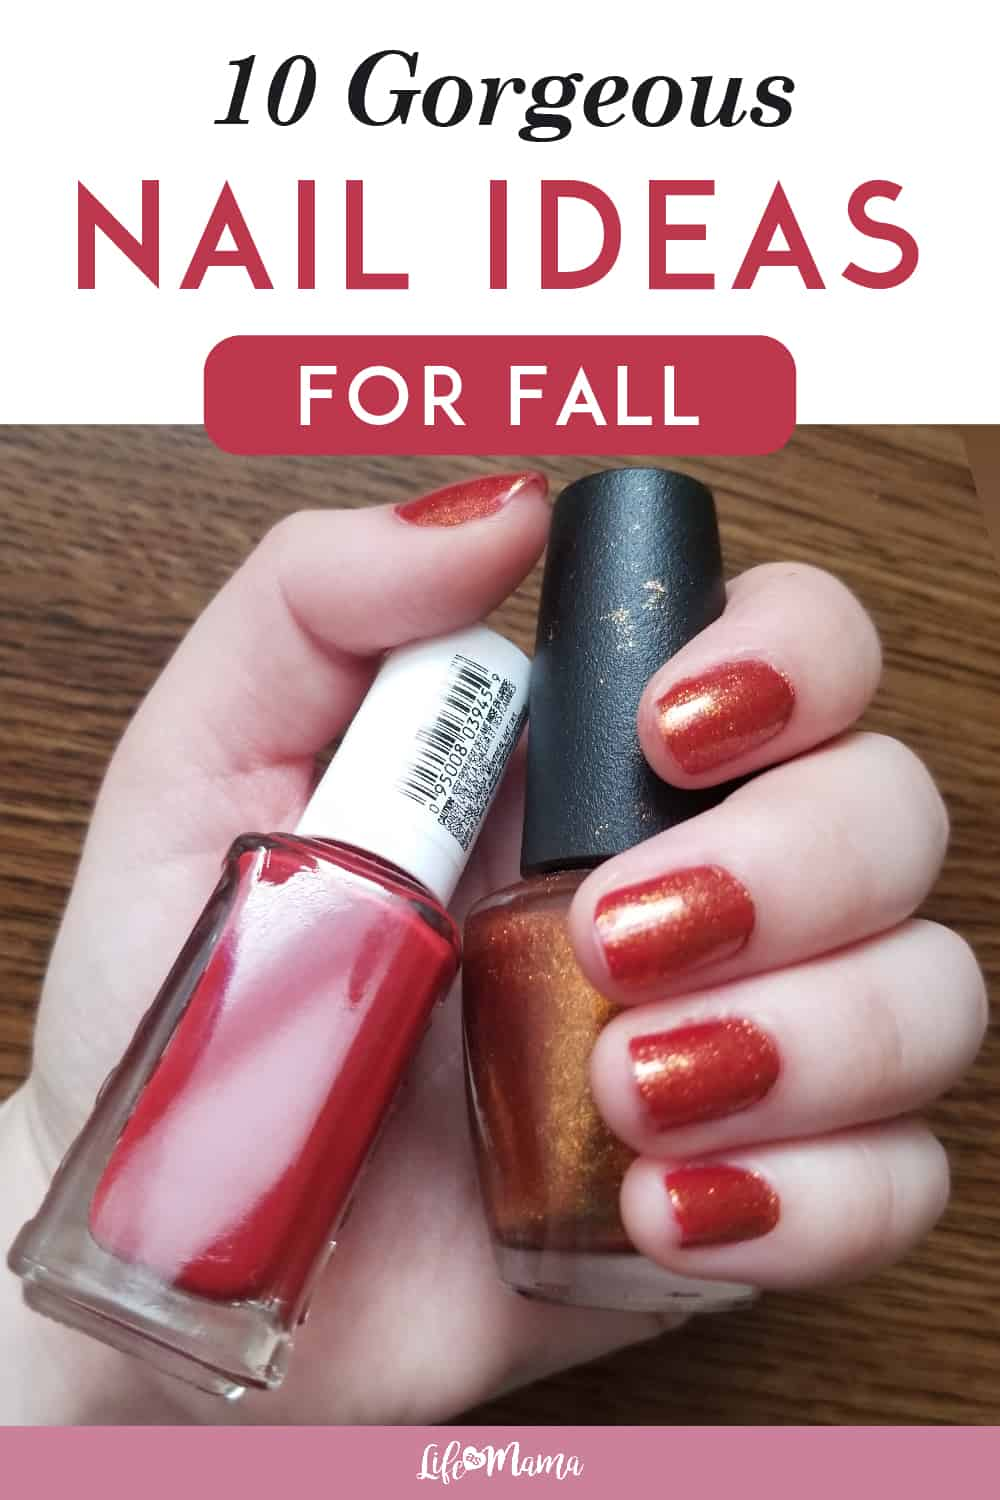 10 Gorgeous Nail Ideas For Fall